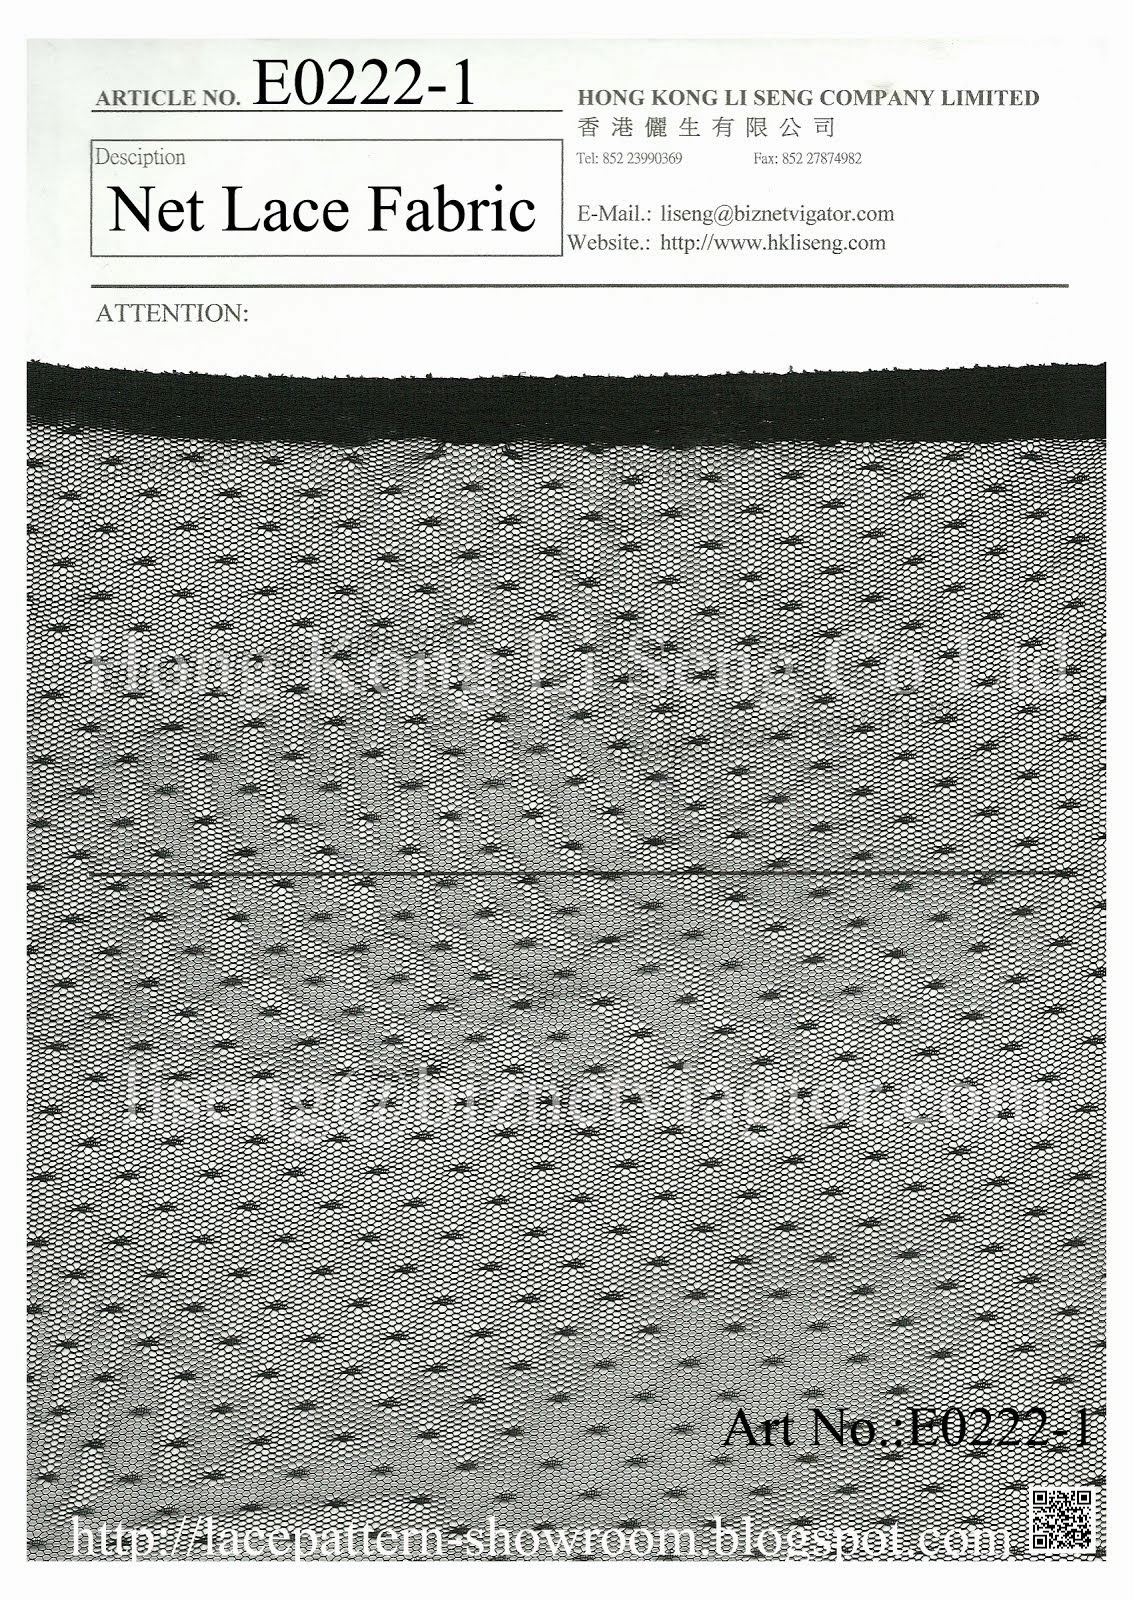 Black Net Lace Fabric Wholesale and Supplier - Hong Kong Li Seng Co ltd